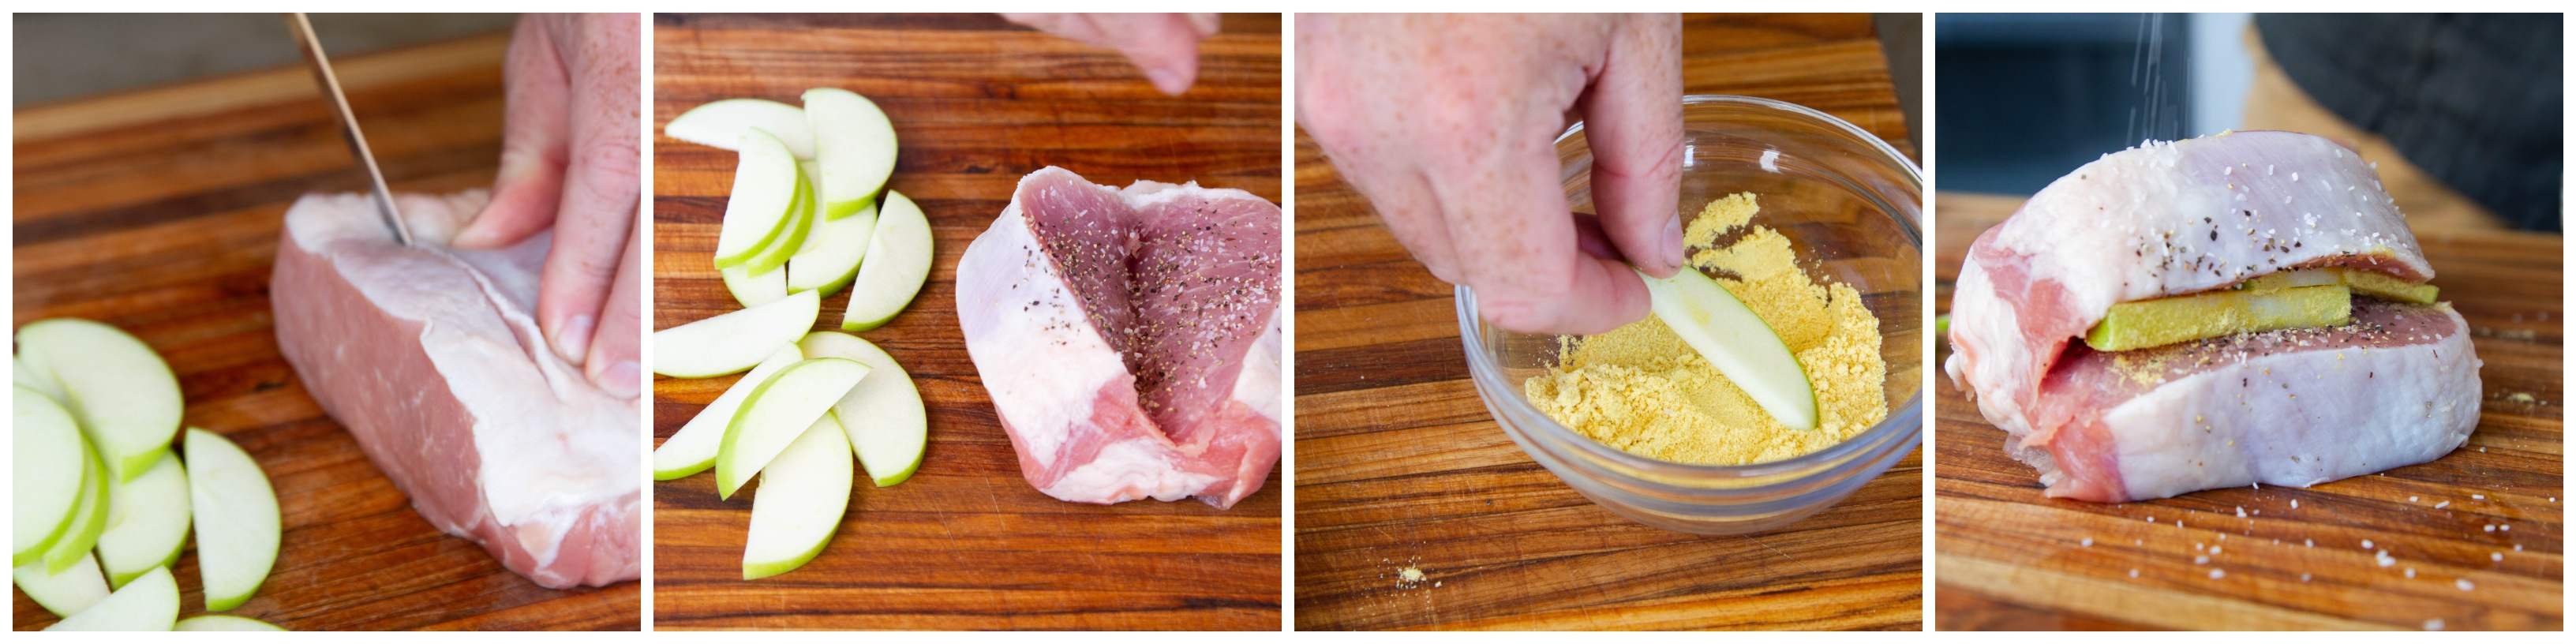 How To Grill Thick Cut Pork Chops Thermoworks,Easy Sweet Potato Casserole With Pecans